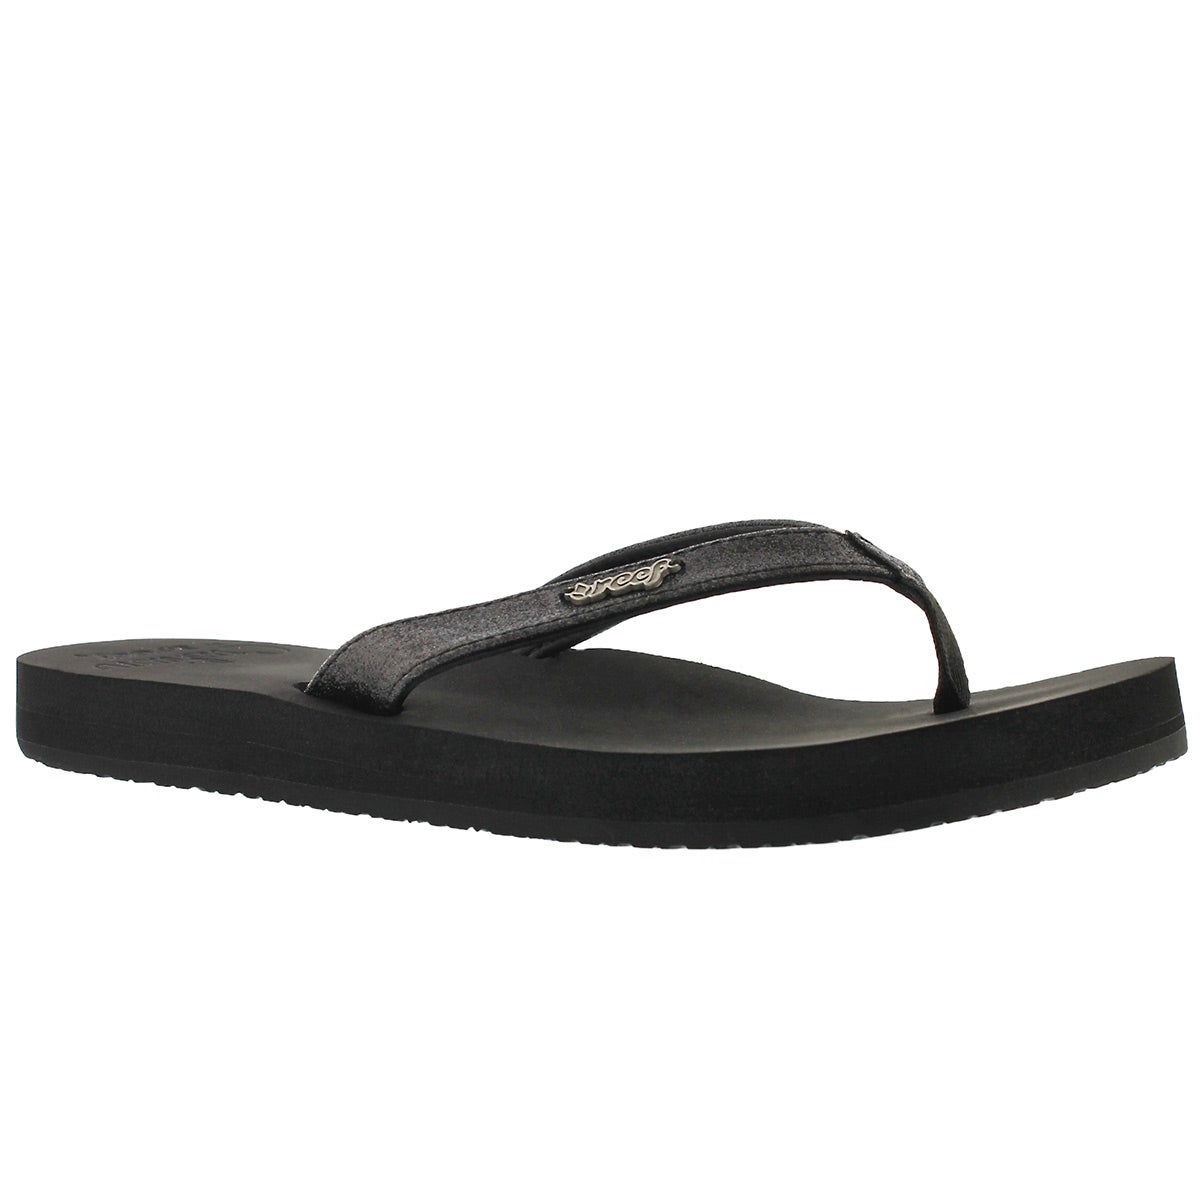 Women's STAR CUSHION black flip flops